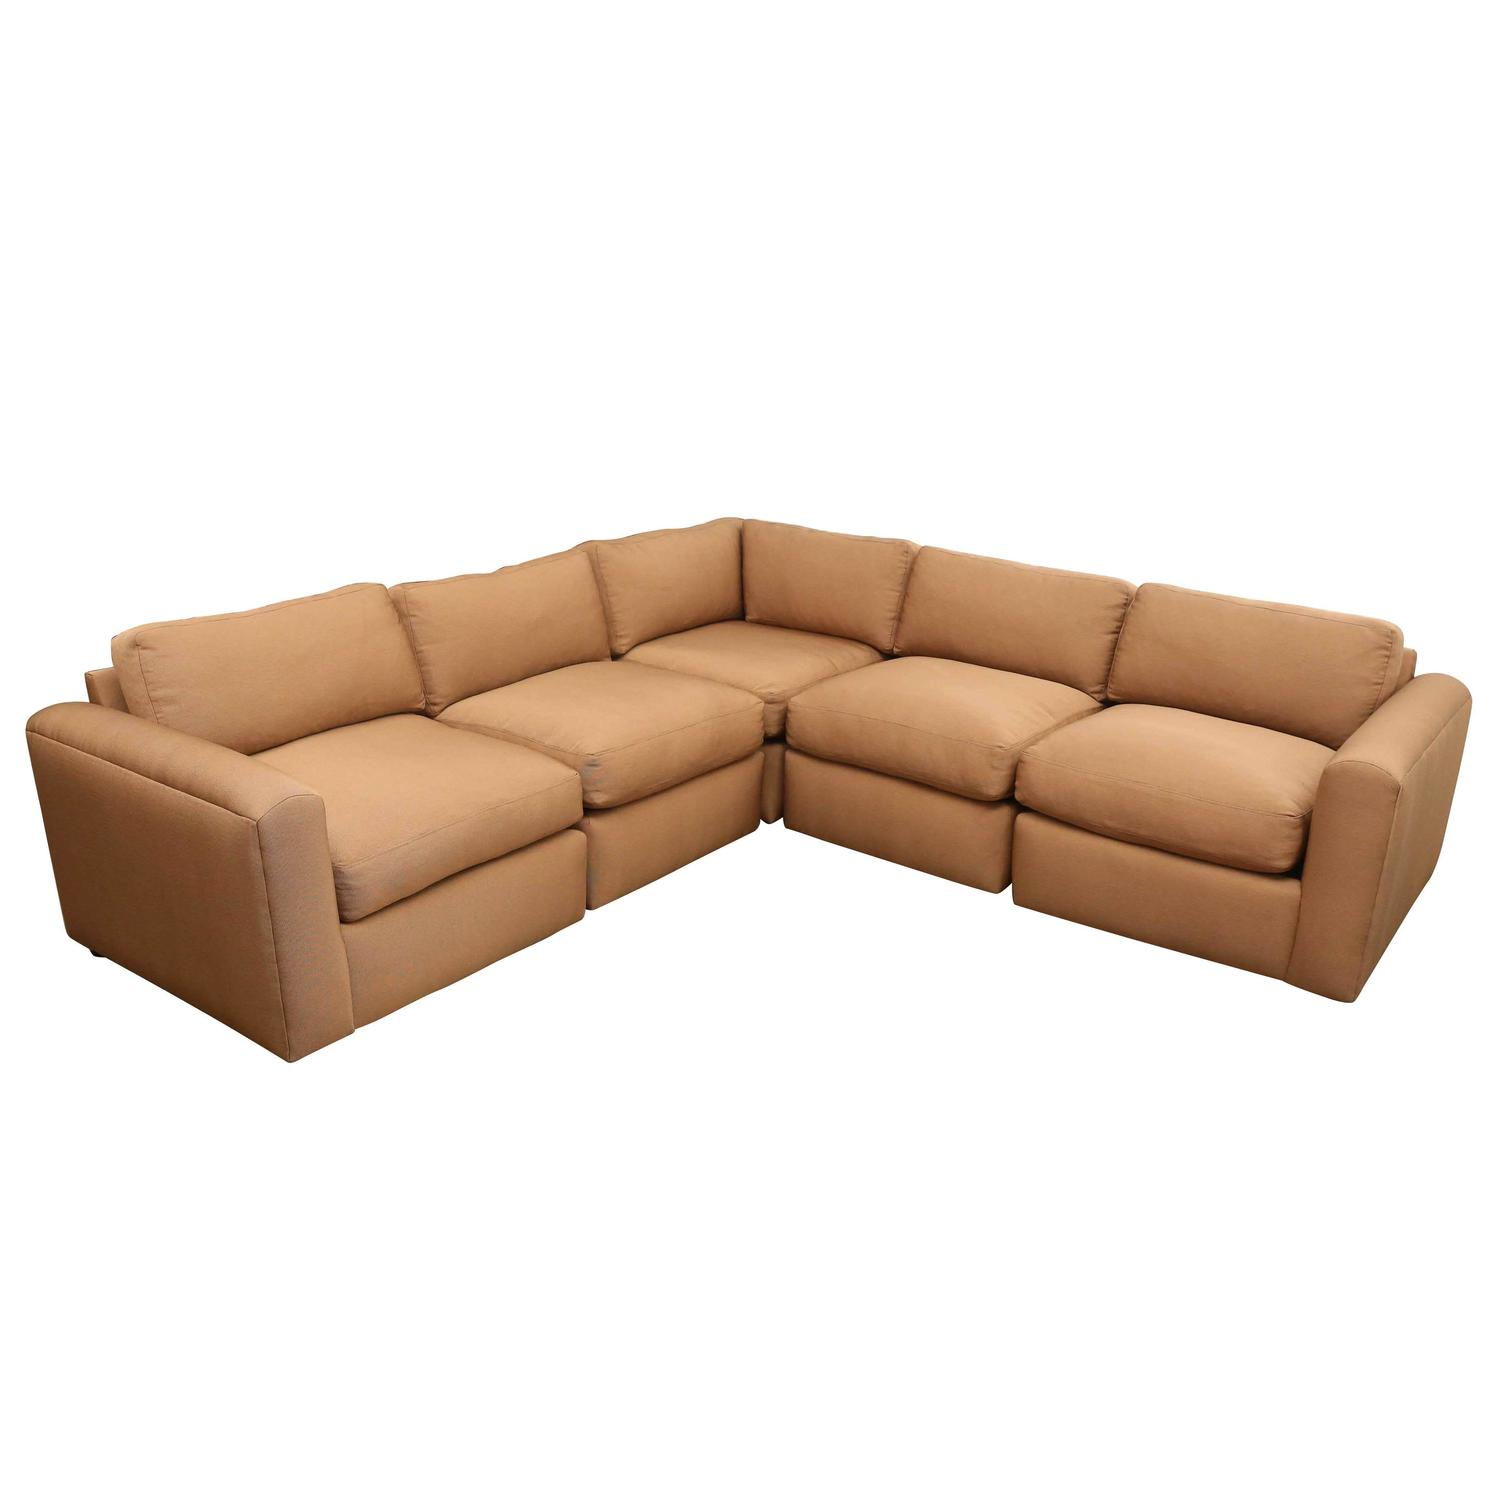 Antique and Vintage Sectional Sofas 420 For Sale at 1stdibs